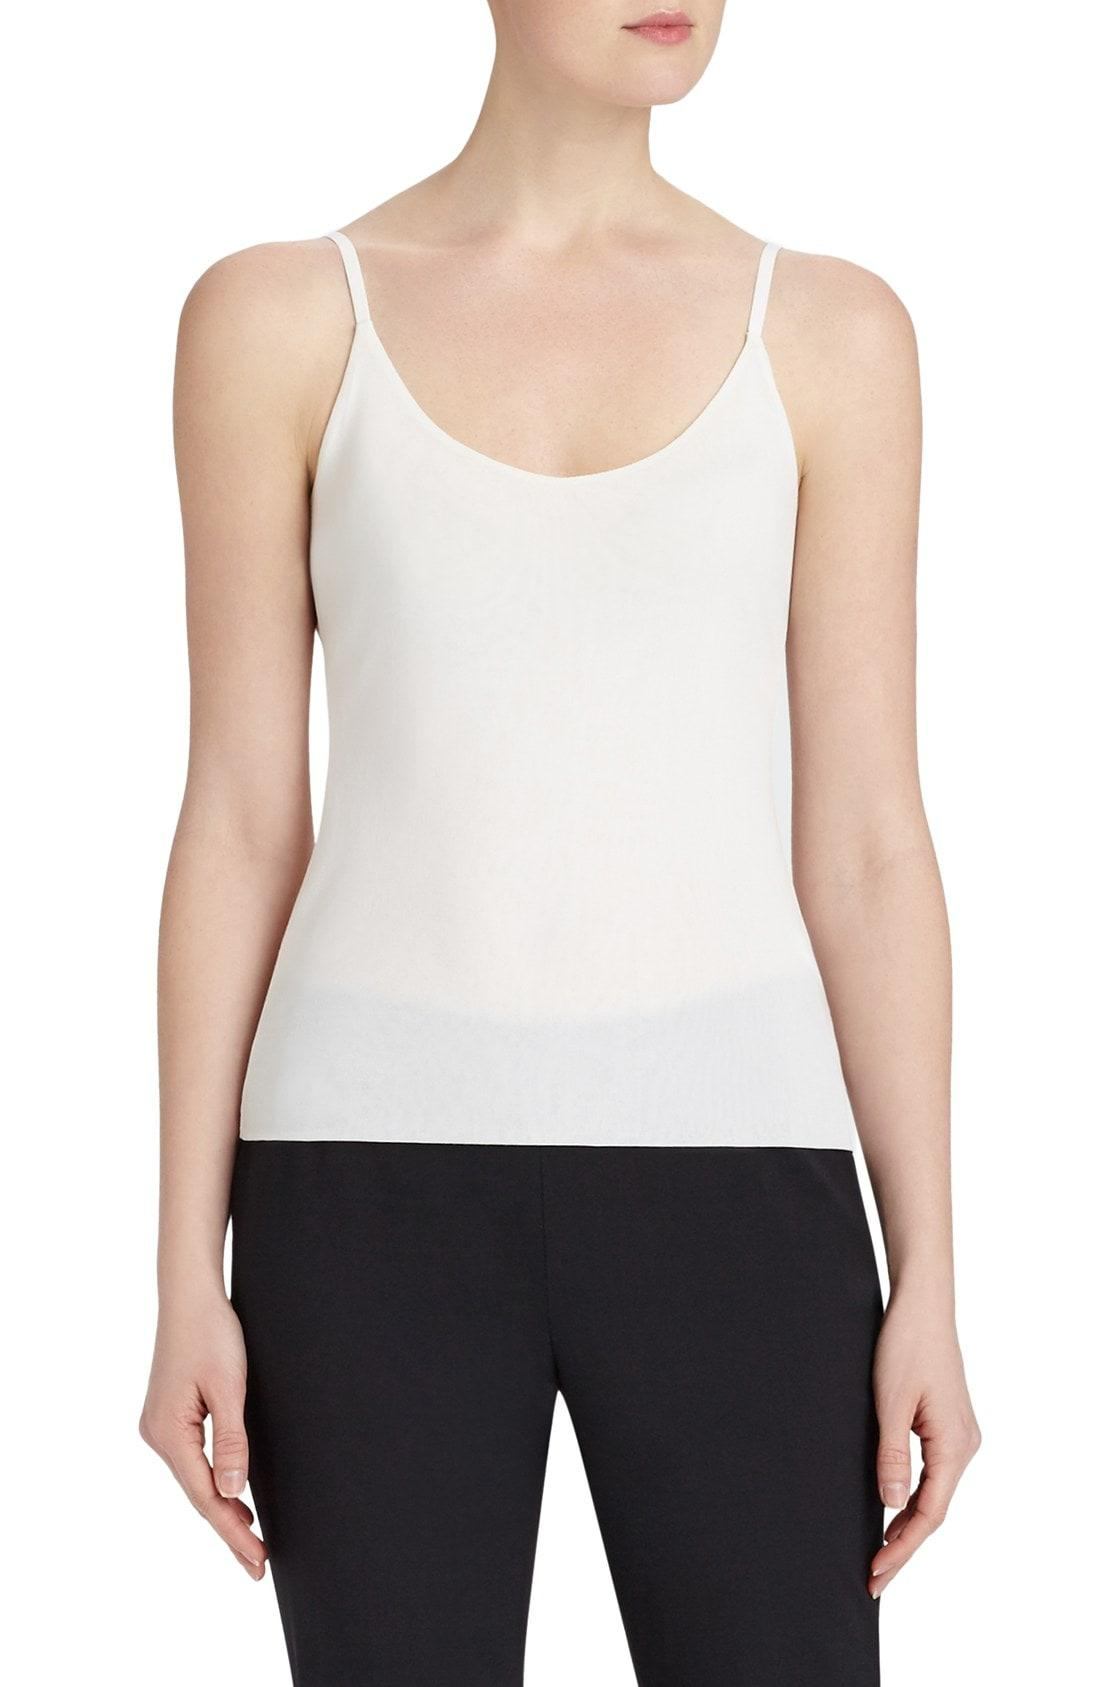 Lafayette 148 Plus Size Jersey Camisole W/ Adjustable Straps In Cloud